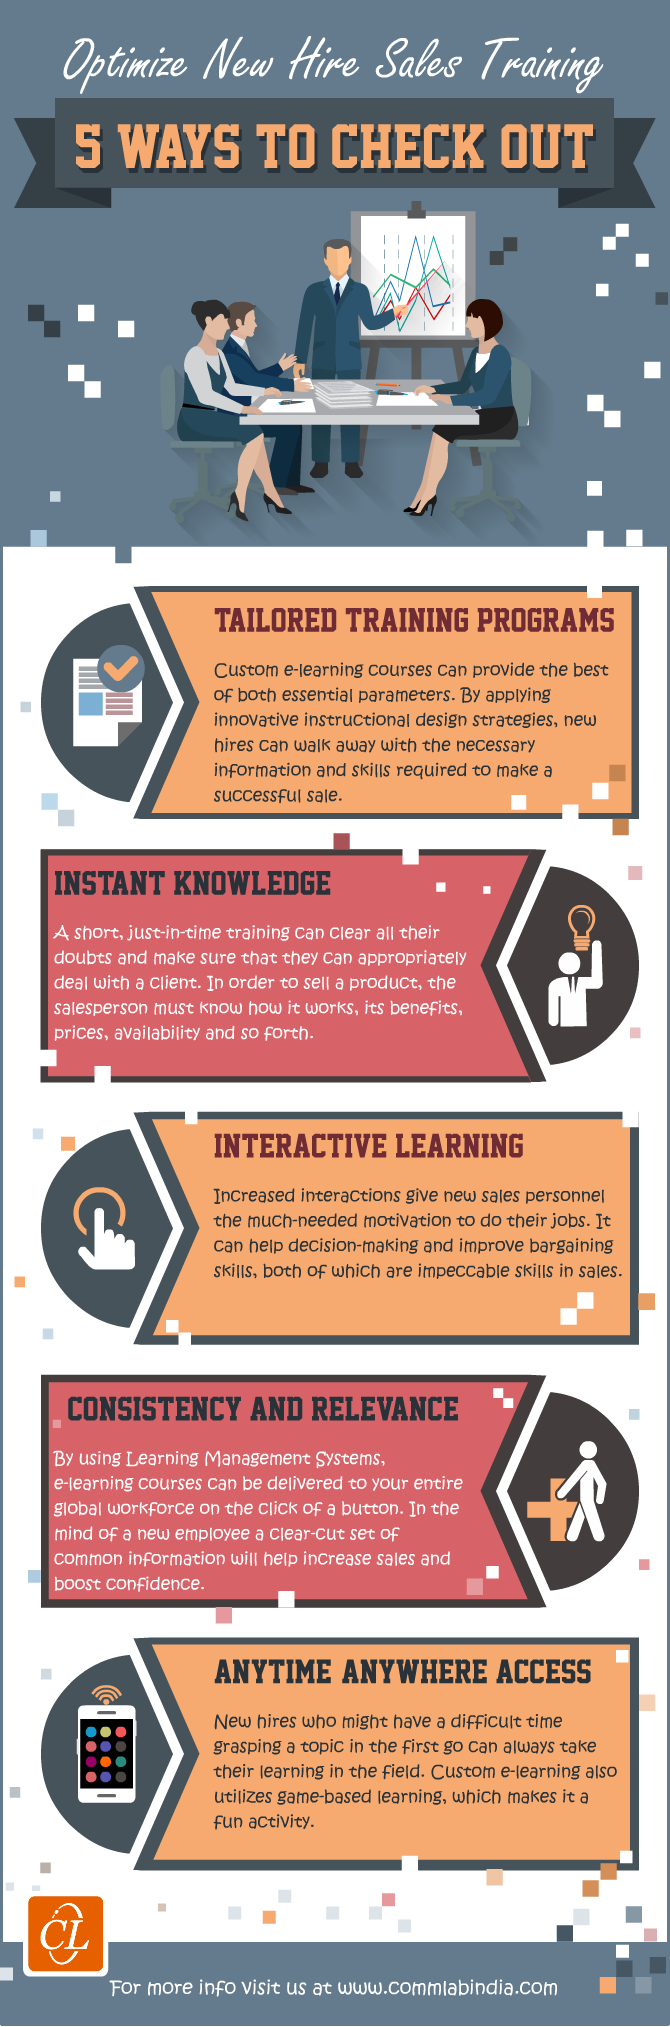 Optimize New Hire Sales Training - 5 Ways to Check [Infographic]